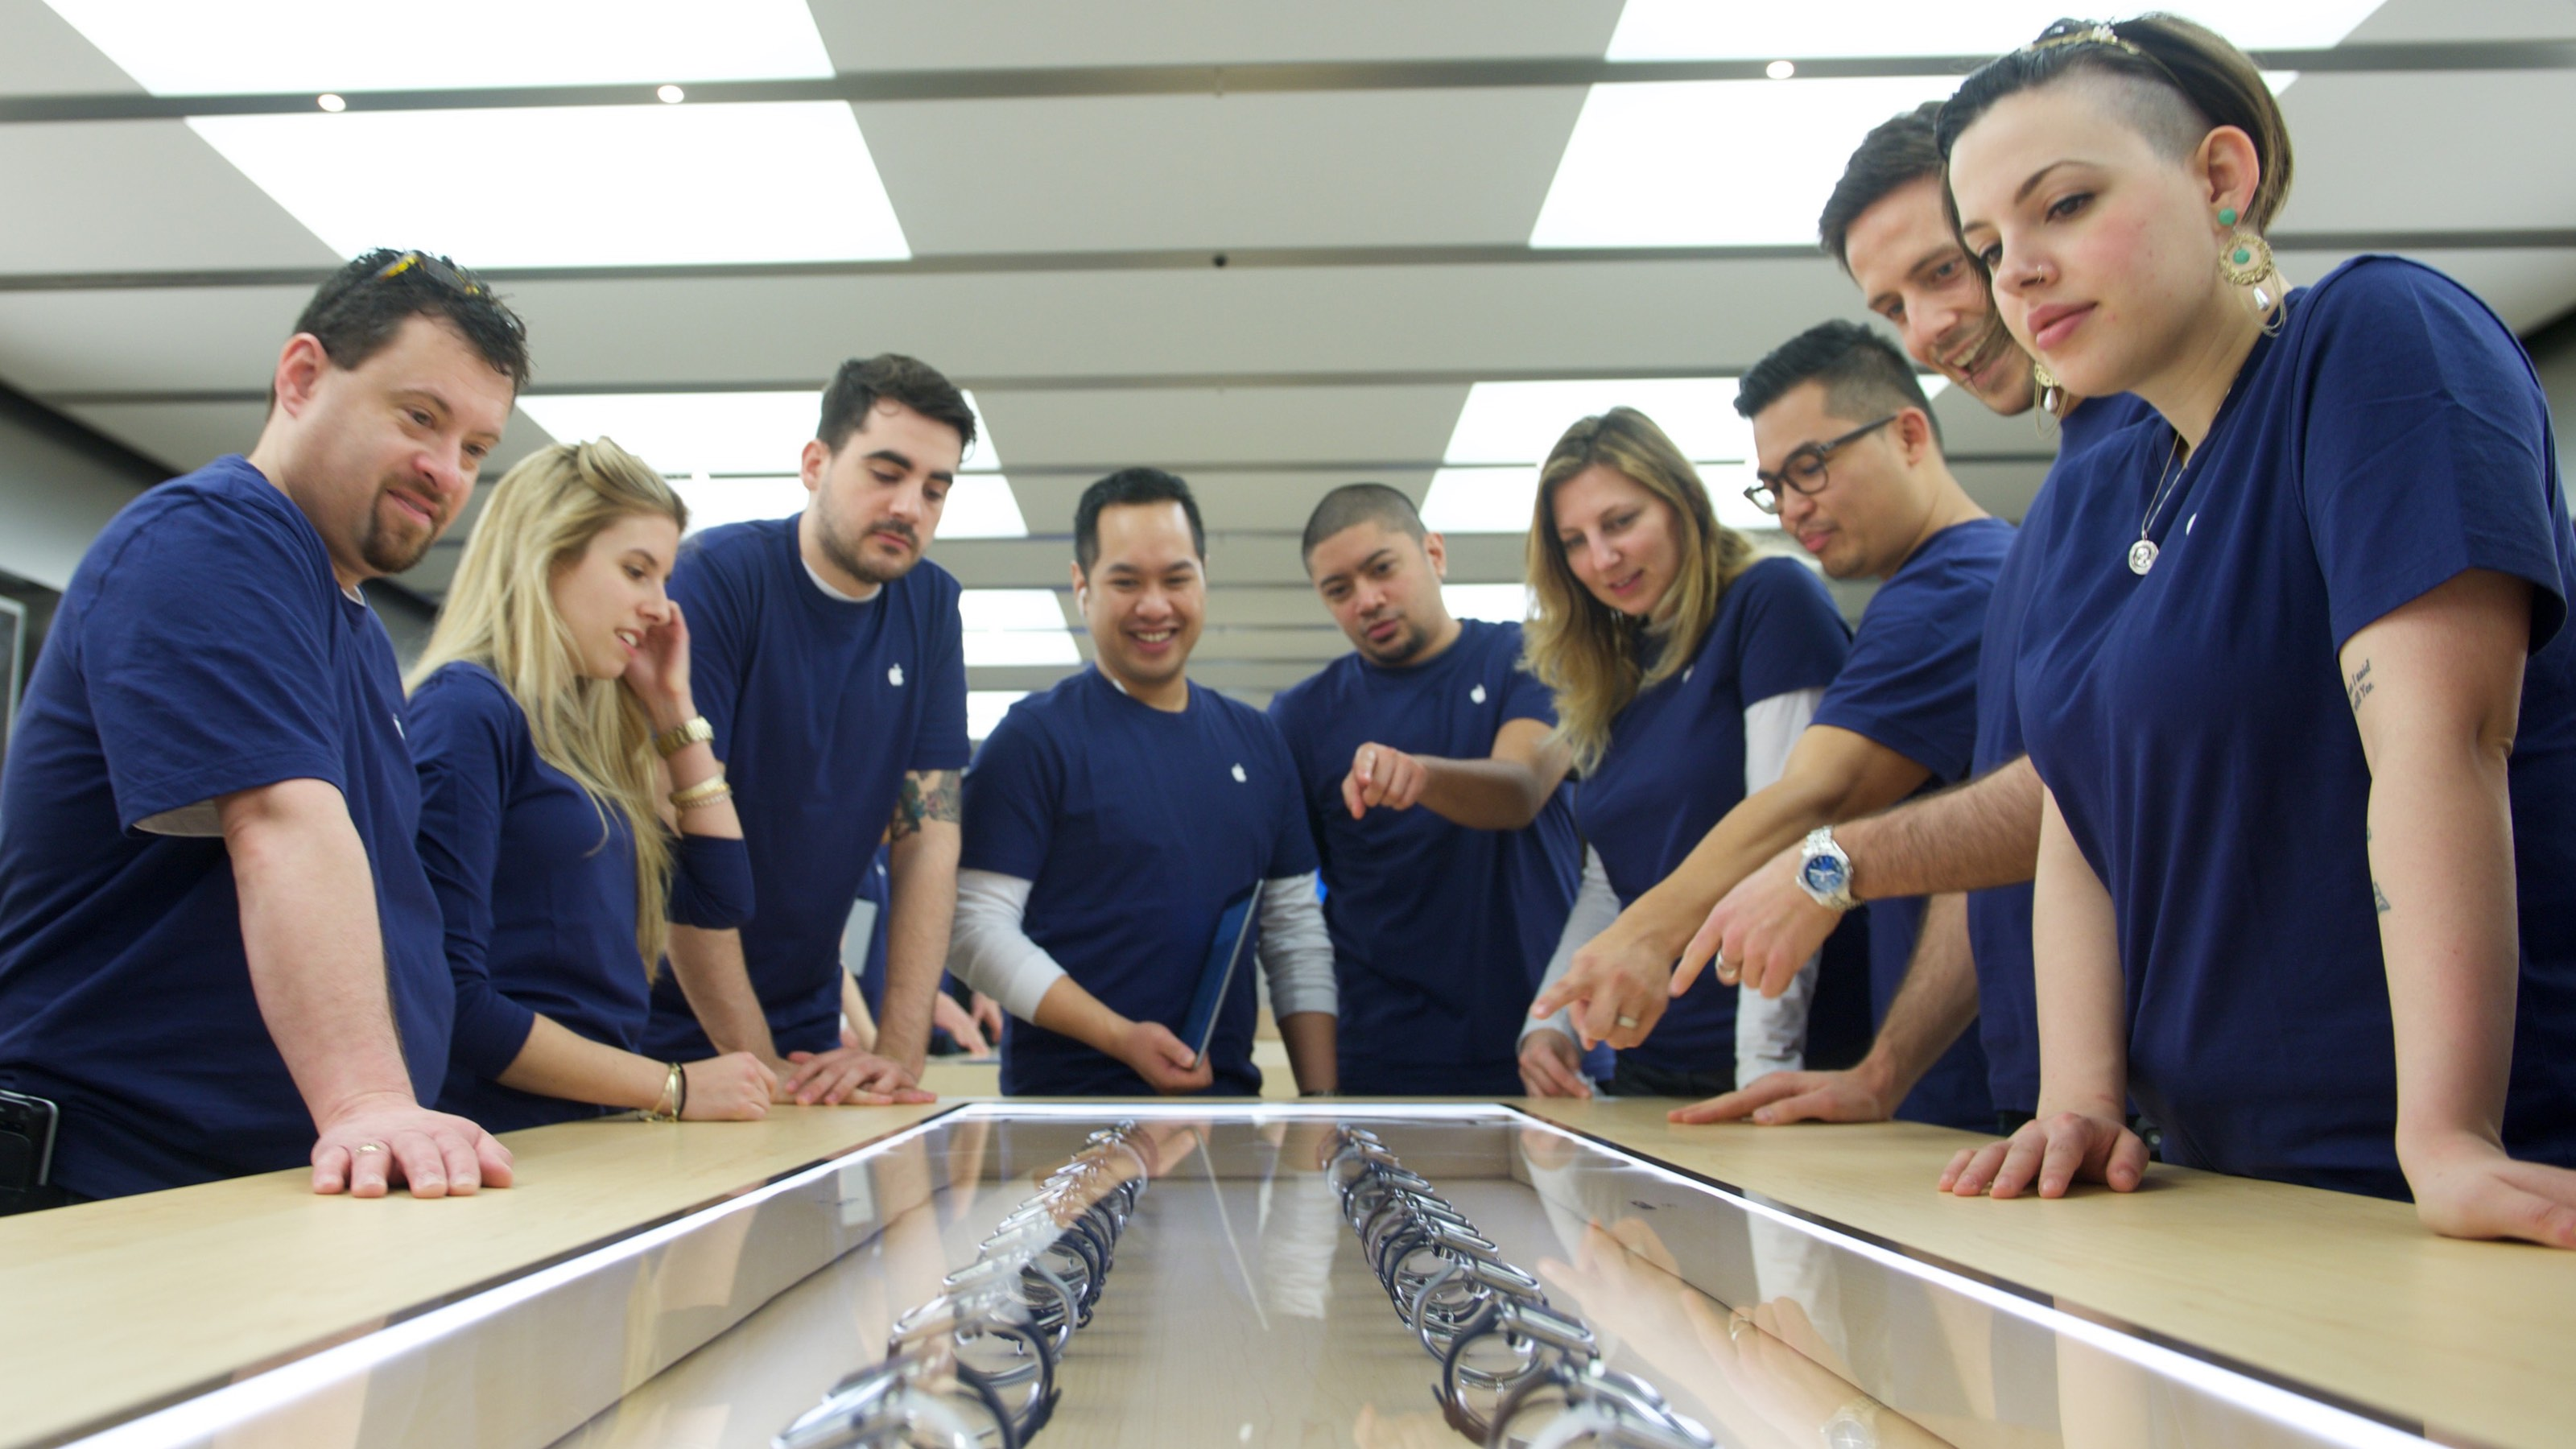 Apple Team Members prepare for the release of the Apple Watch at the Eaton Centre Apple Store on Friday, April 10, 2015 in Toronto. (Photo by Ryan Emberley/Invision for Apple/AP Images)